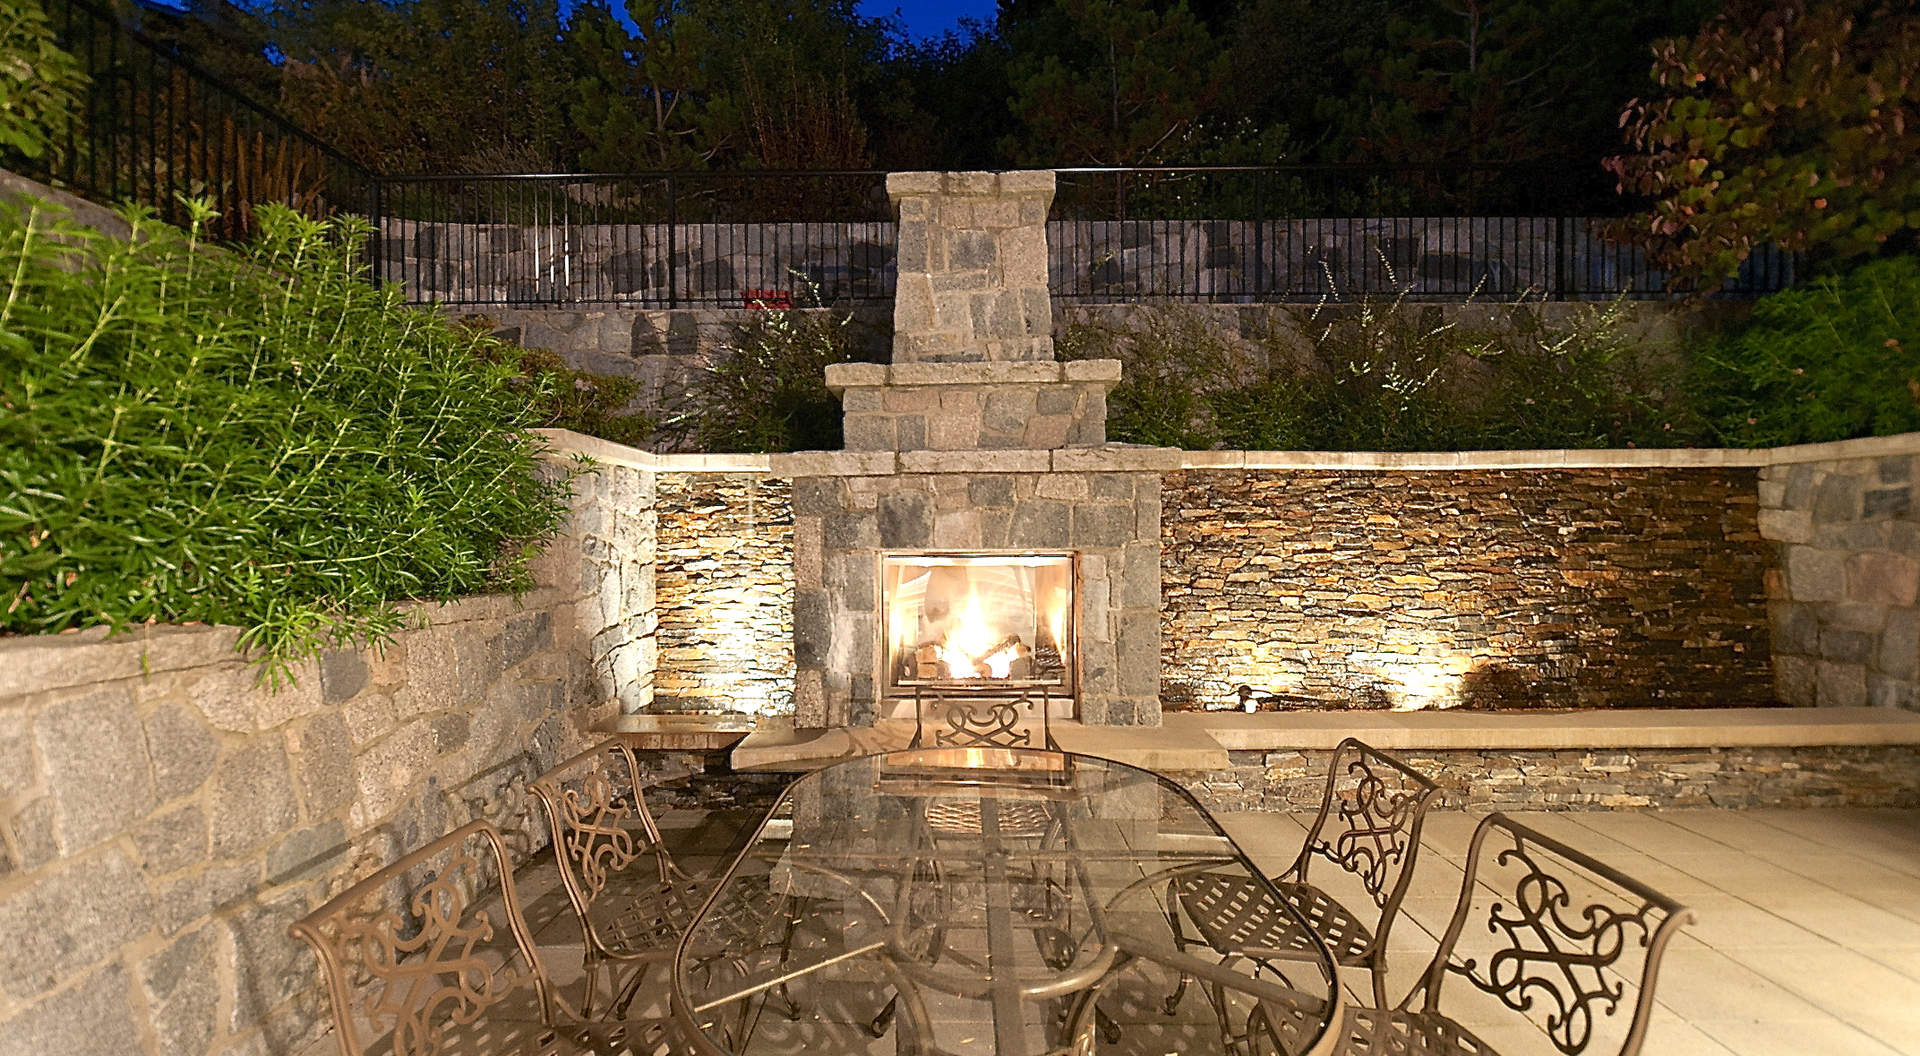 Sensational Outdoor Entertainment Area with Fireplace